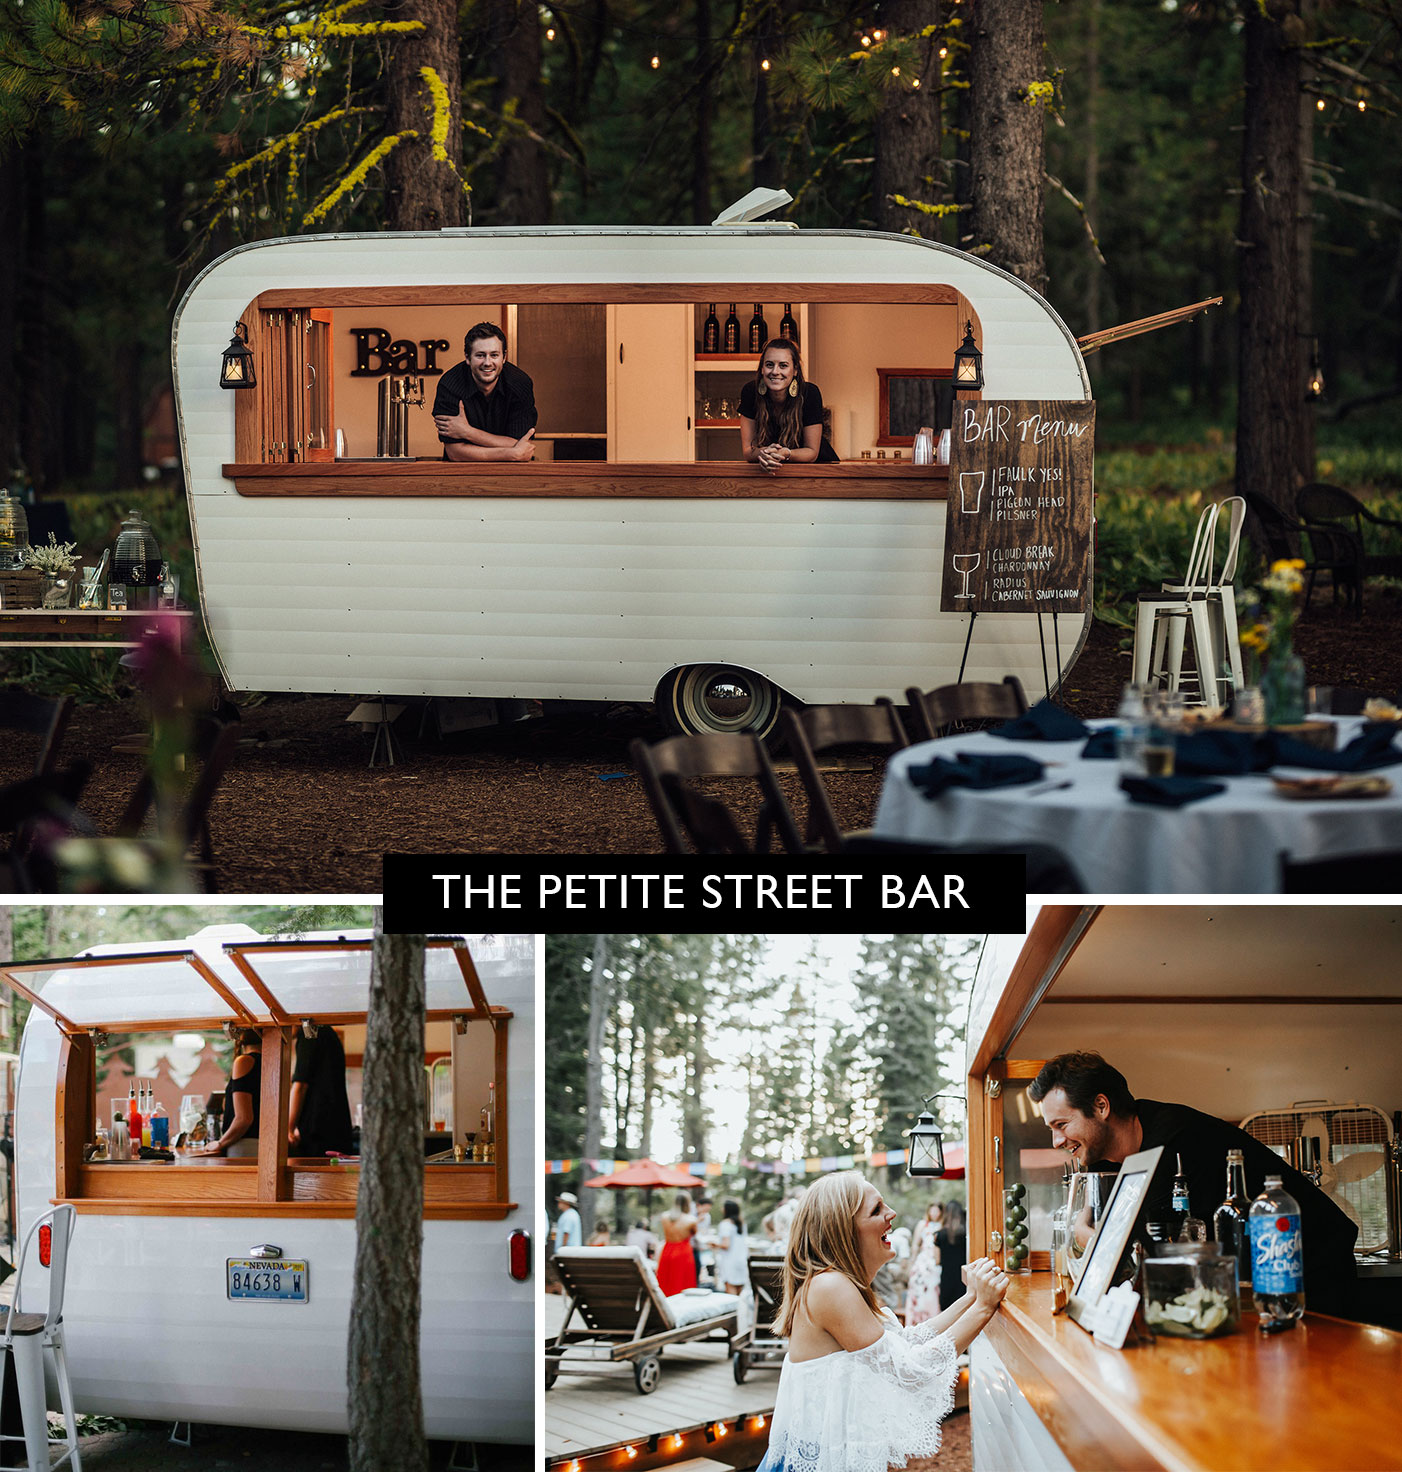 The Petite Street Bar